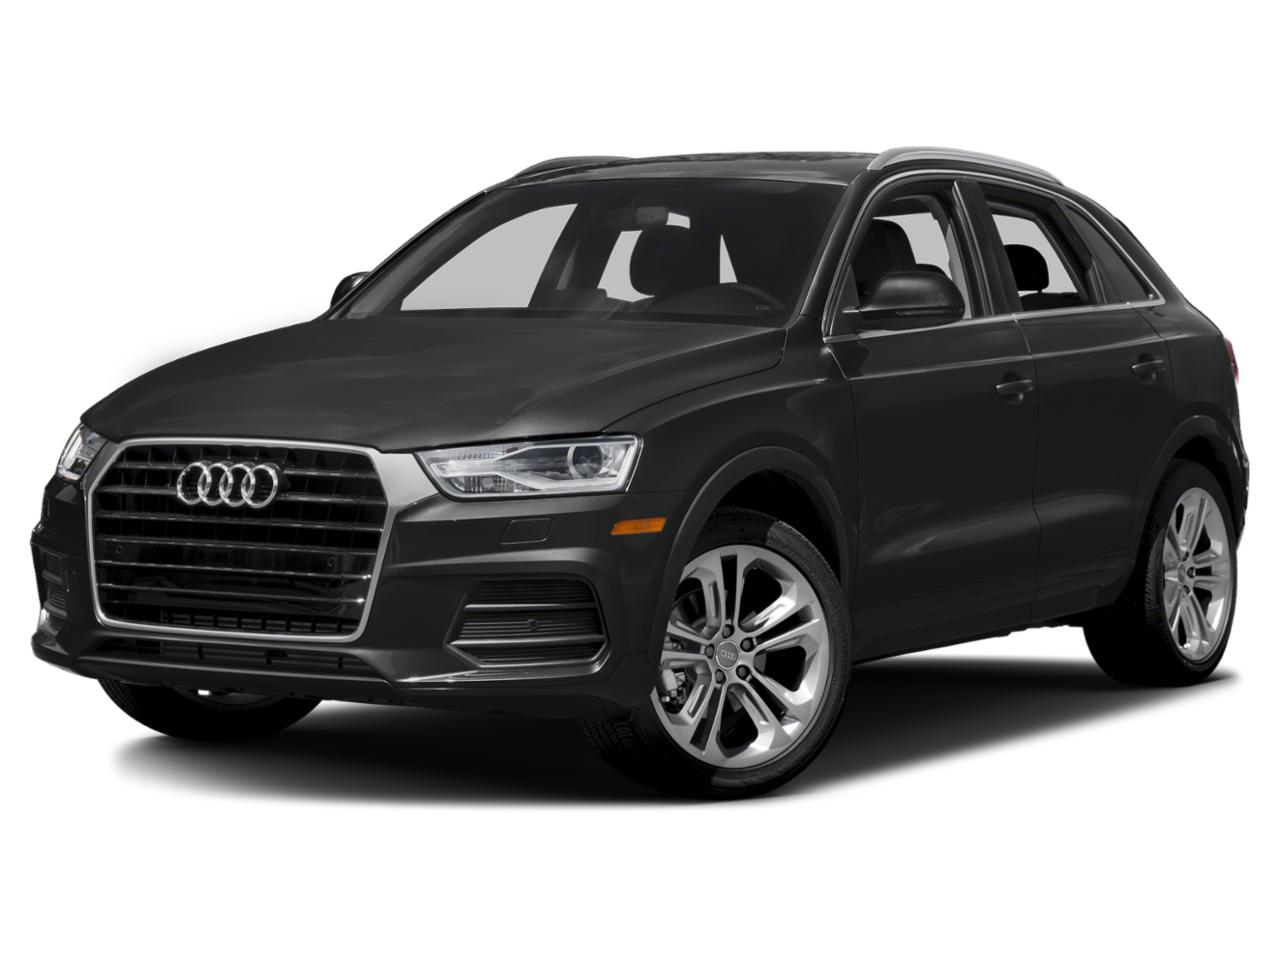 2018 Audi Q3 Vehicle Photo in Allentown, PA 18103